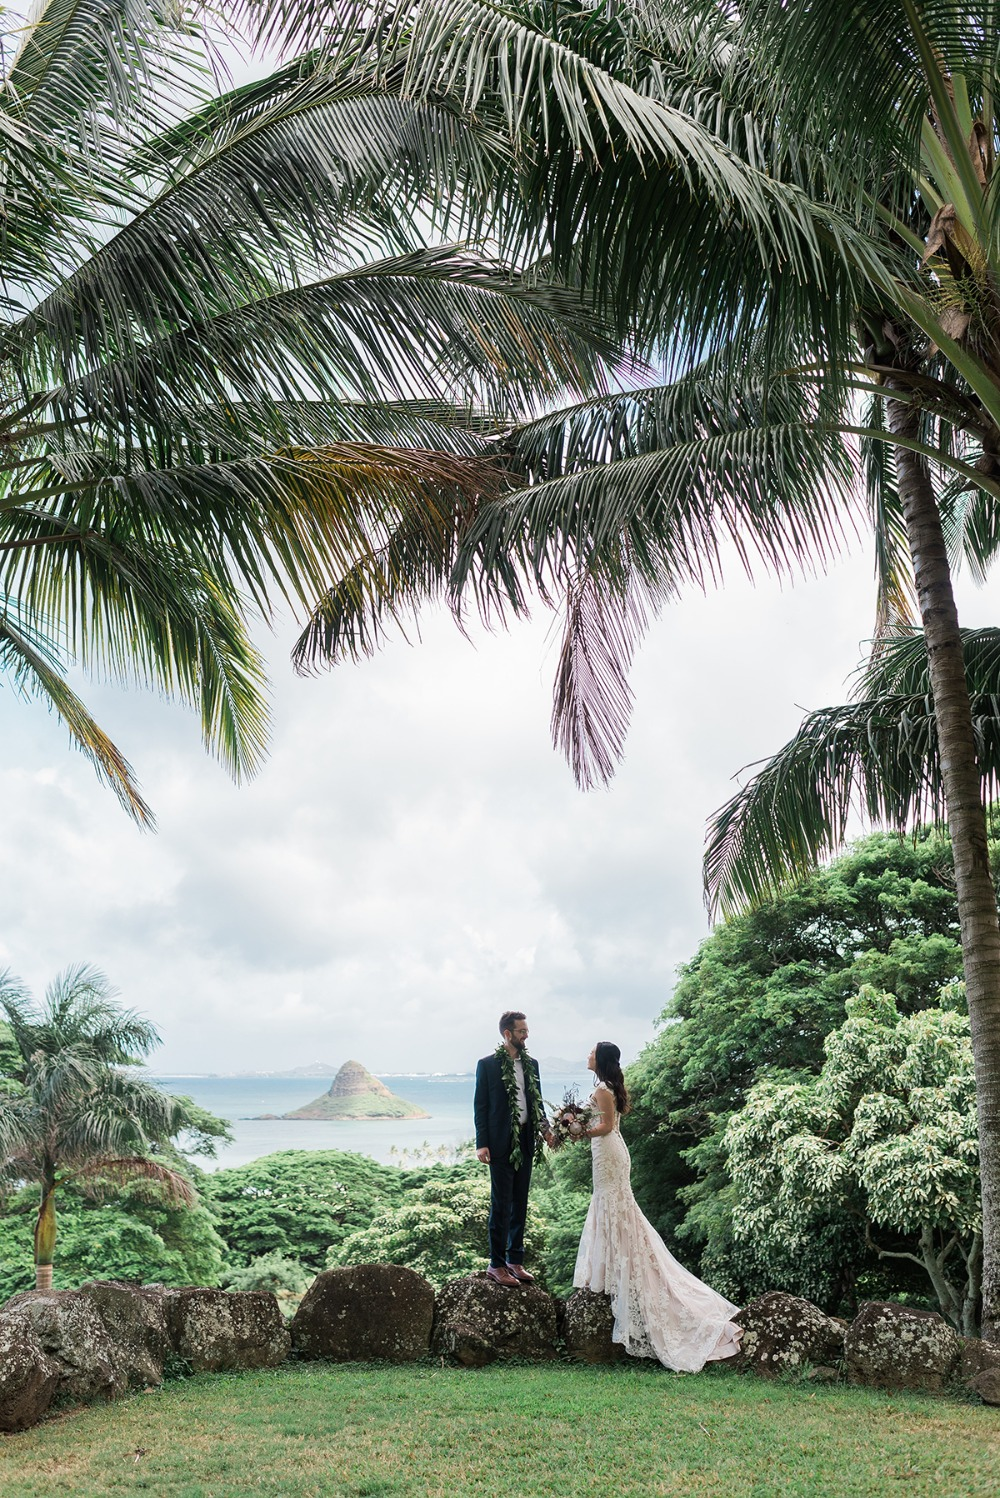 How To Have An Intimate Heartfelt Wedding In Hawaii